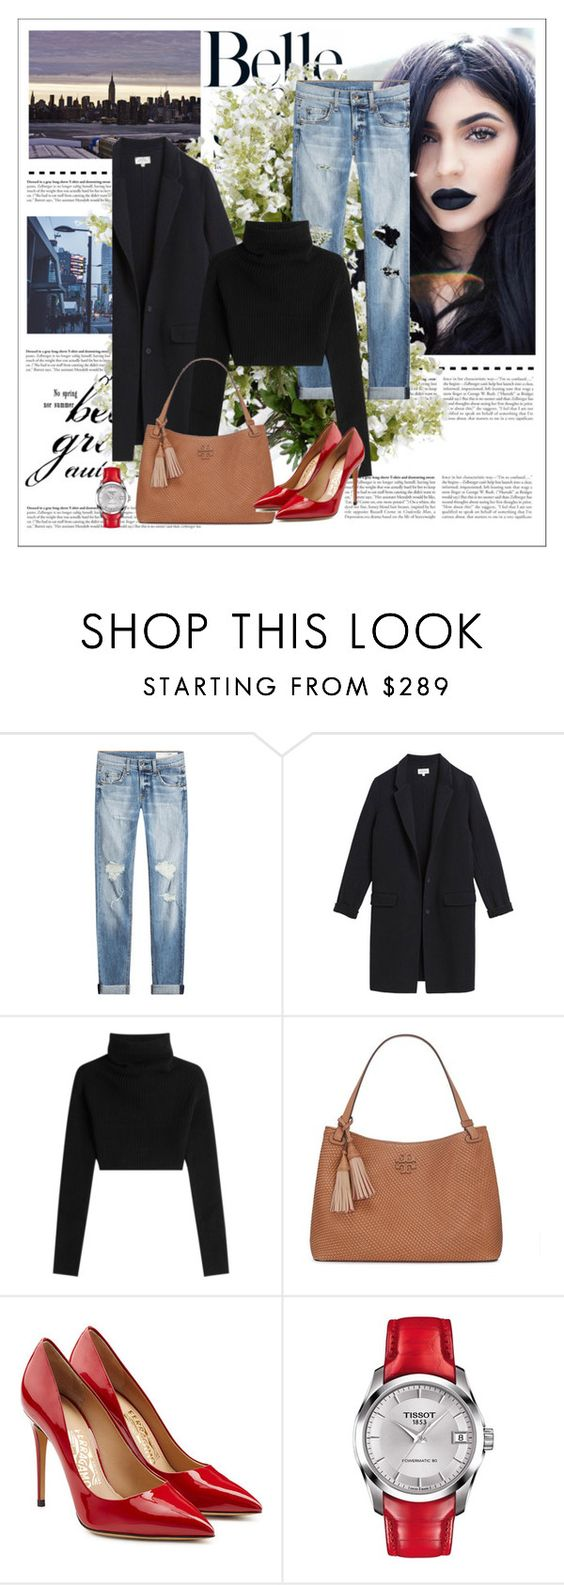 """""""Thea"""" by dragonflylt ❤ liked on Polyvore featuring rag & bone, Hartford, Valentino, Tory Burch, Salvatore Ferragamo, Tissot and New Growth Designs"""